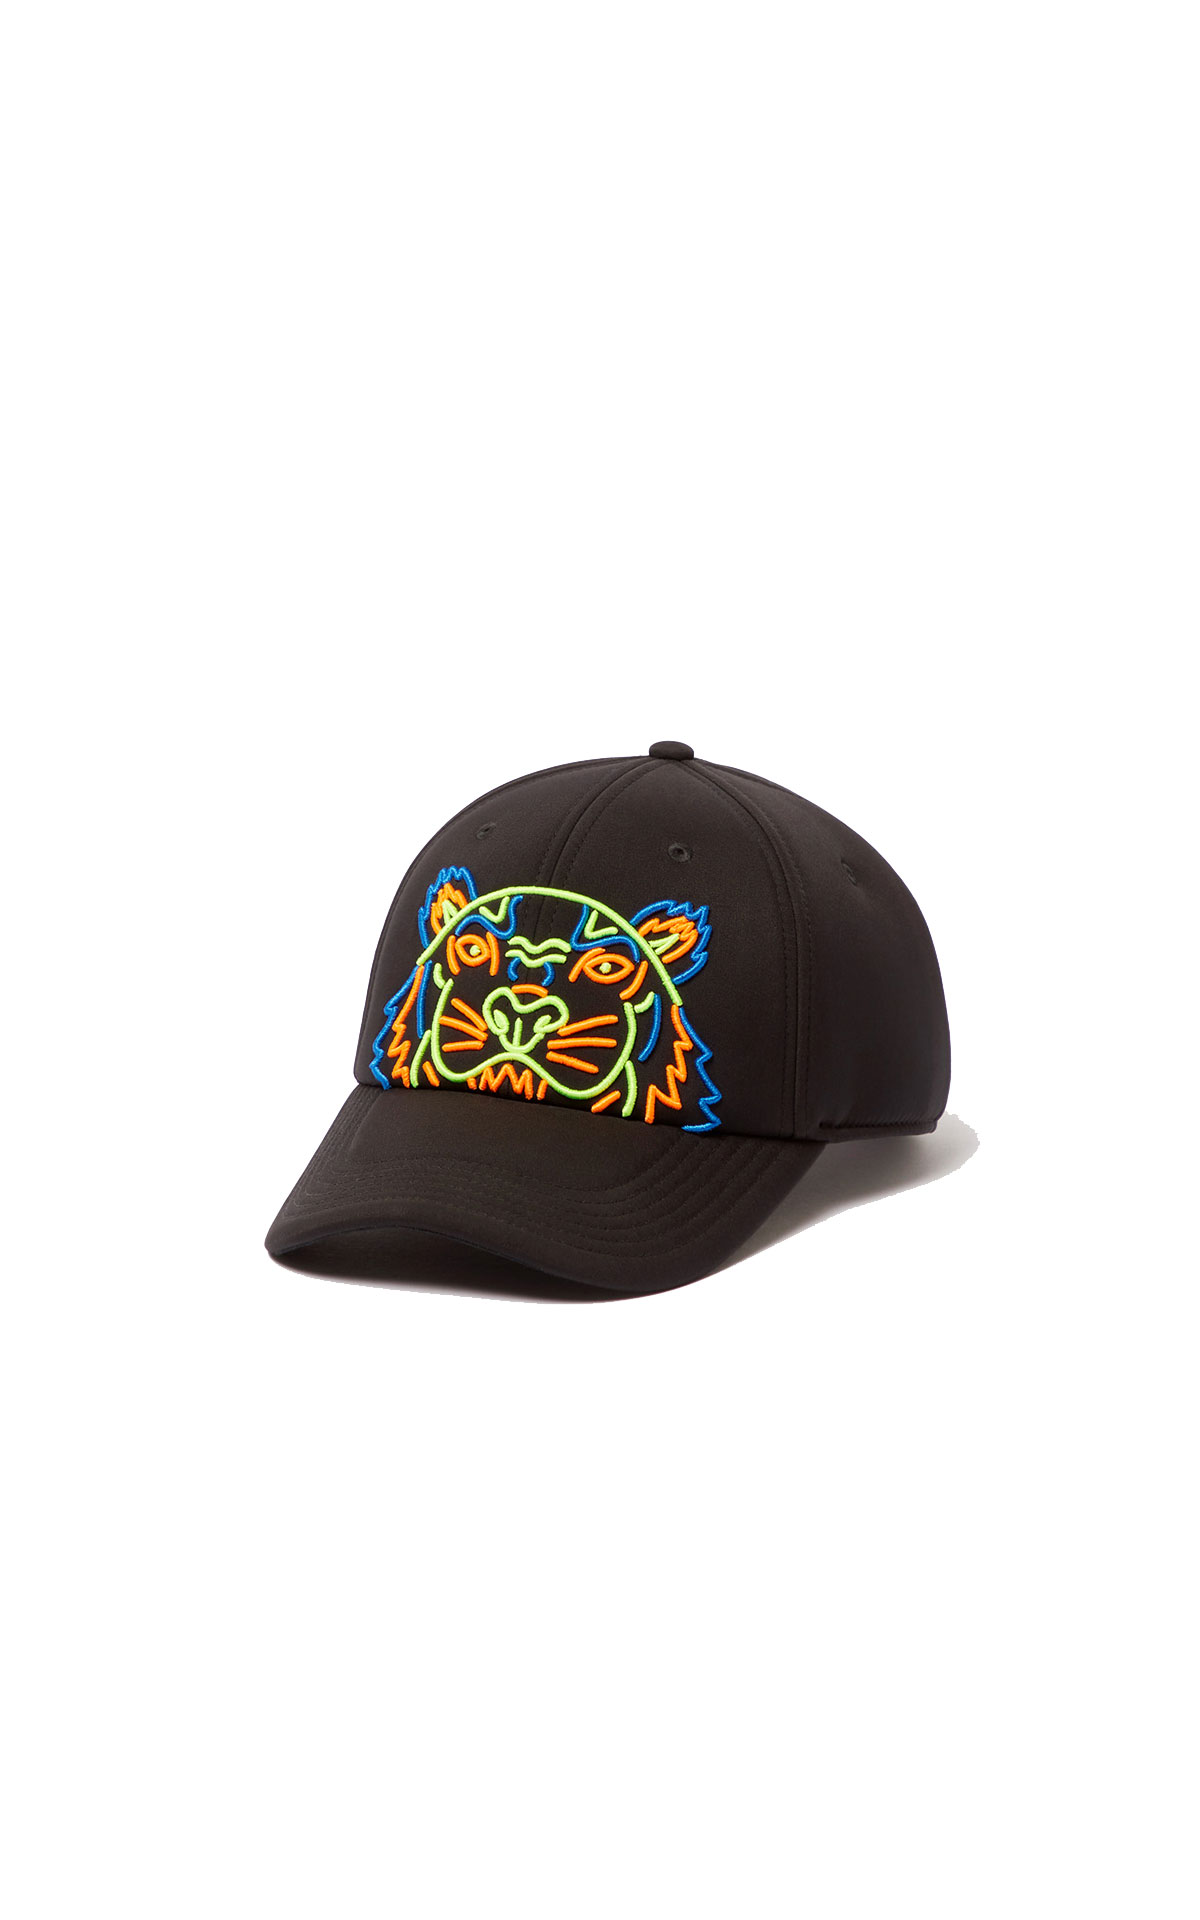 Kenzo Kenzo iconic tiger cap from Bicester Village